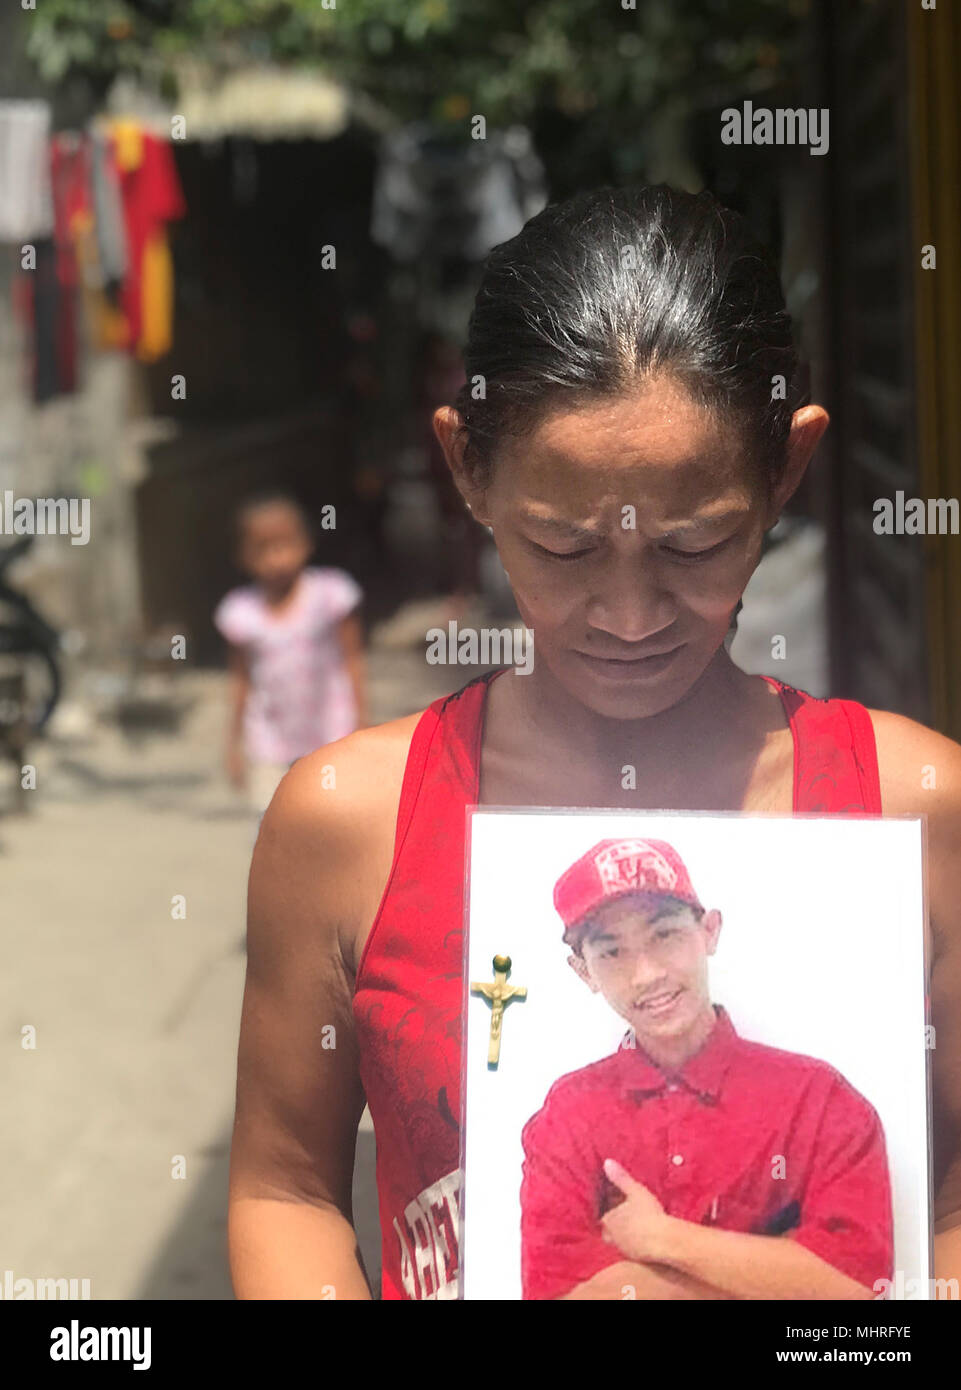 19 April 2018, Philippines, Manila: The Filipino Maria Victoria Dahohoy showing a photo of her son who was shot in Bagong Silang, a suburb of the capital Manila. The 15 year old is one of thousands of victims of the anti-drugs war led by president Rodrigo Duterte. Photo: Christoph Sator/dpa - Stock Image